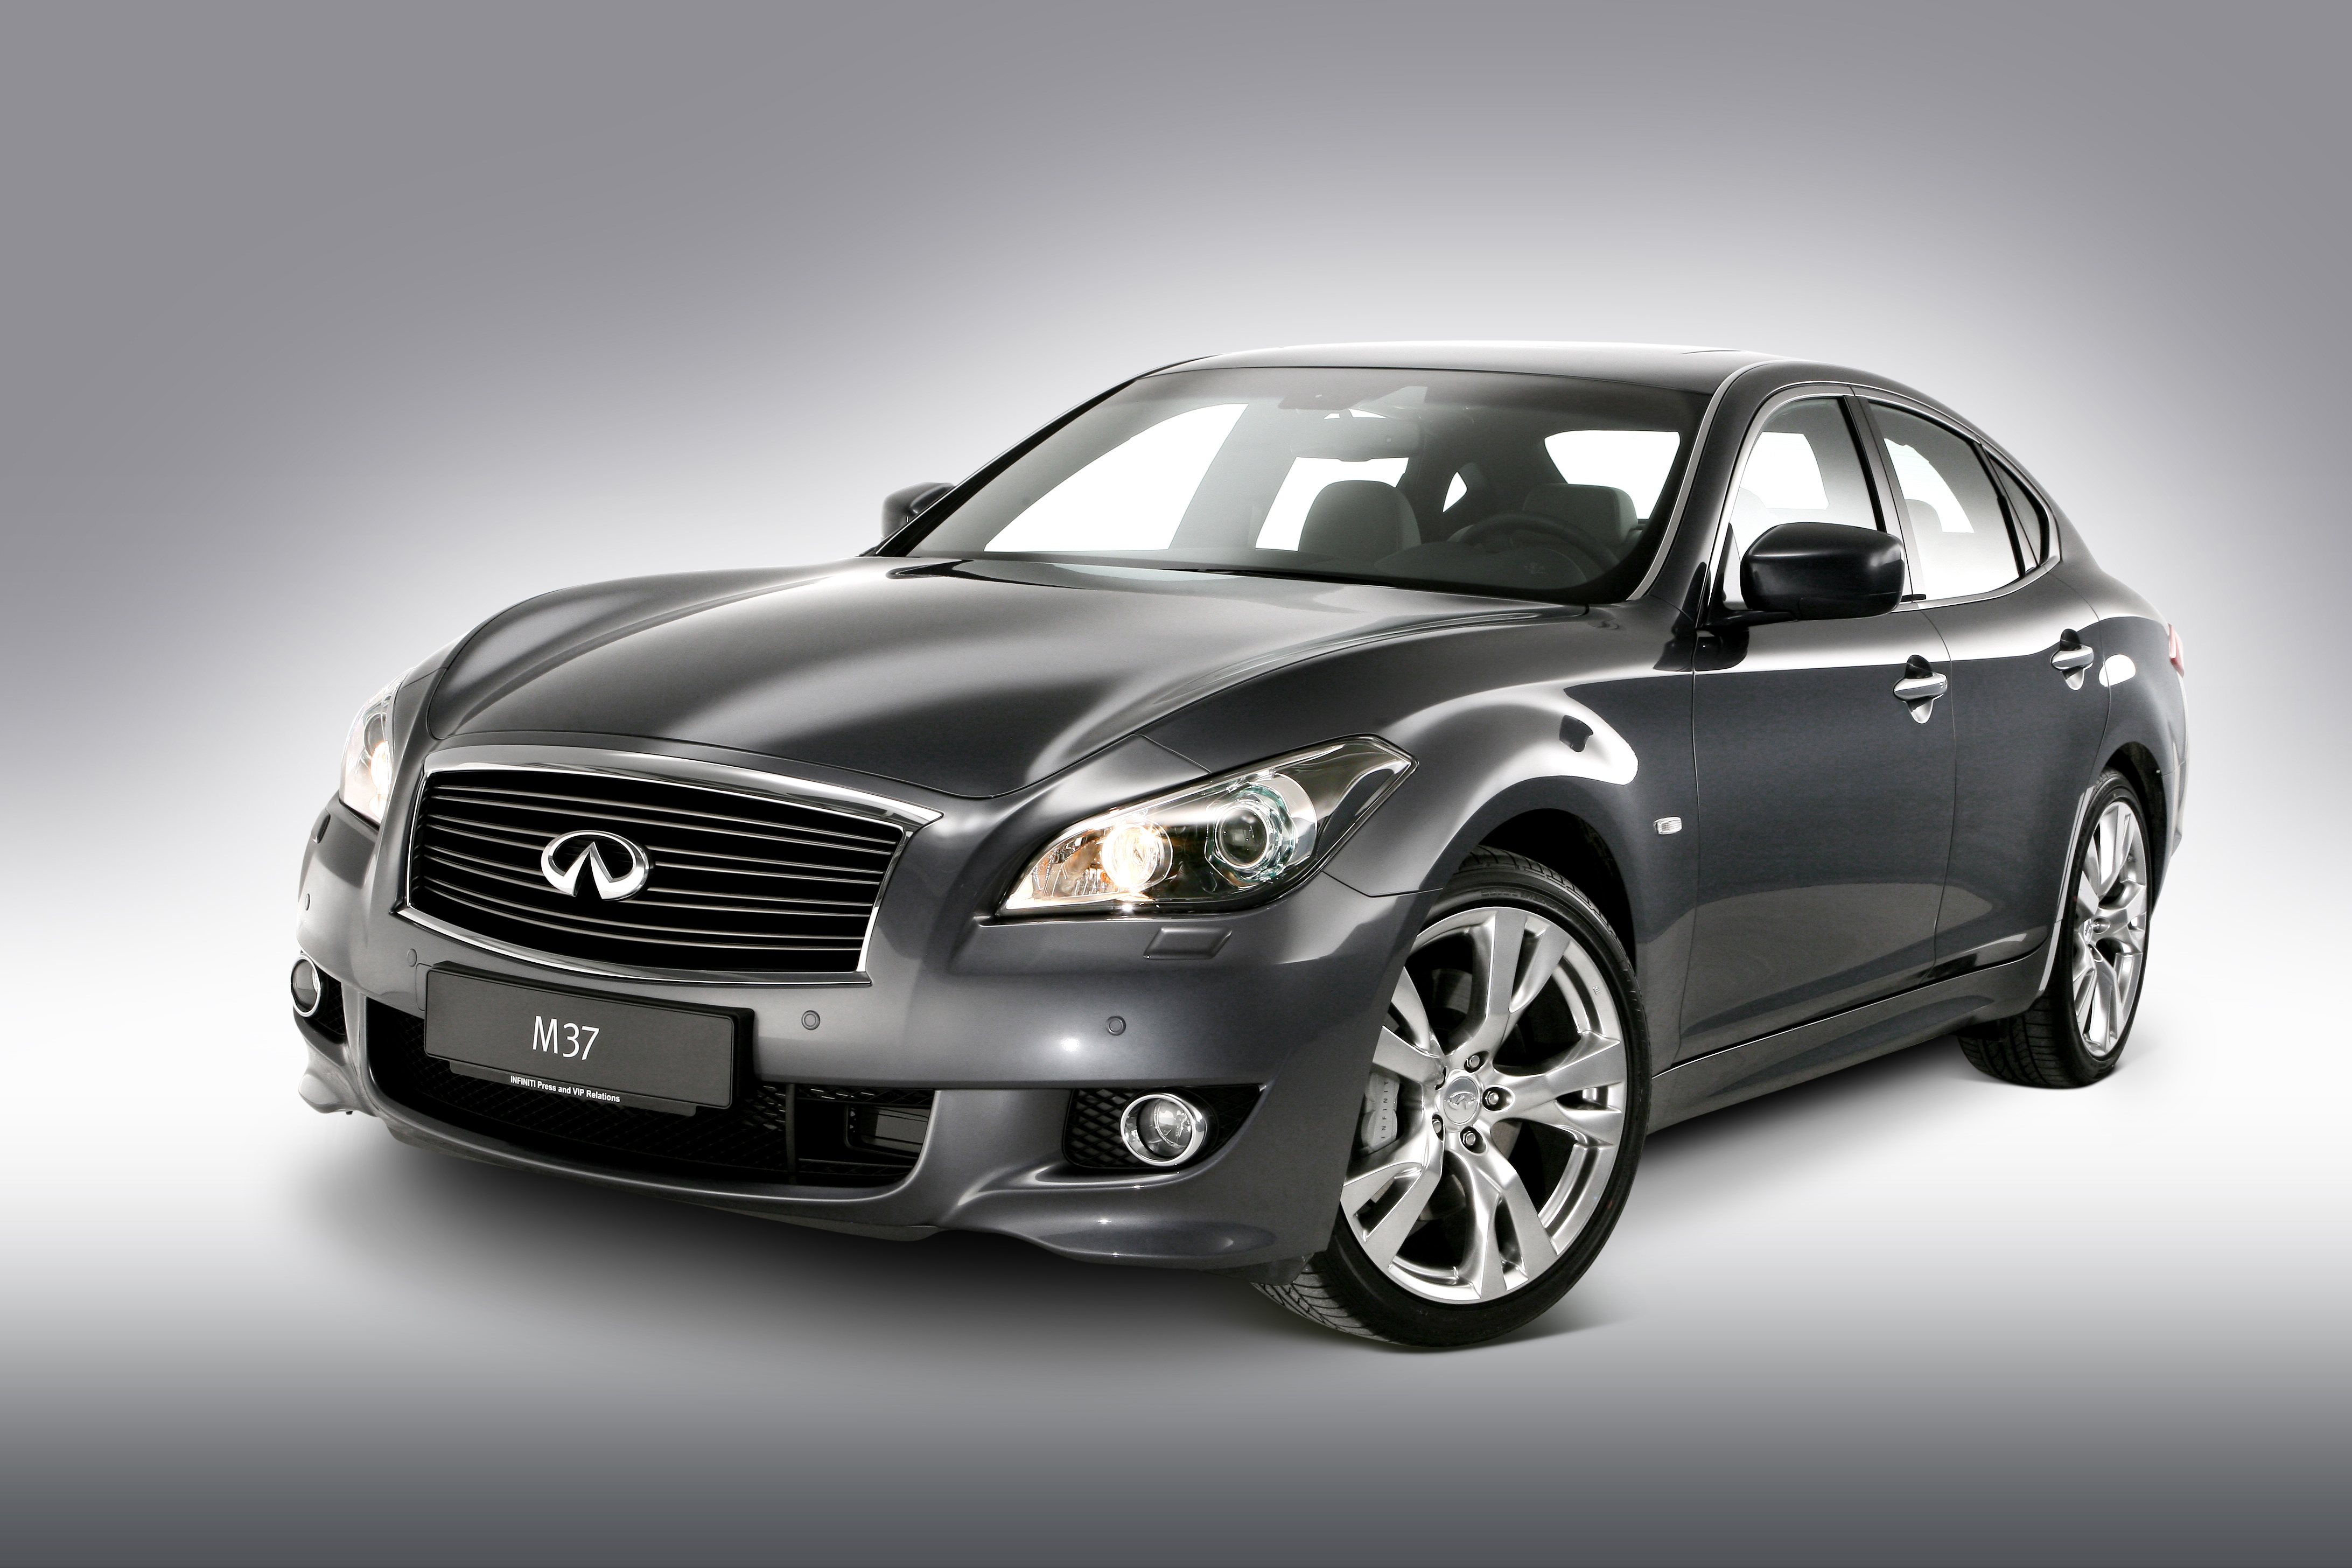 Nissan Luxury Brand >> Nissan S Luxury Brand Infiniti To Go On Sale In Australia In